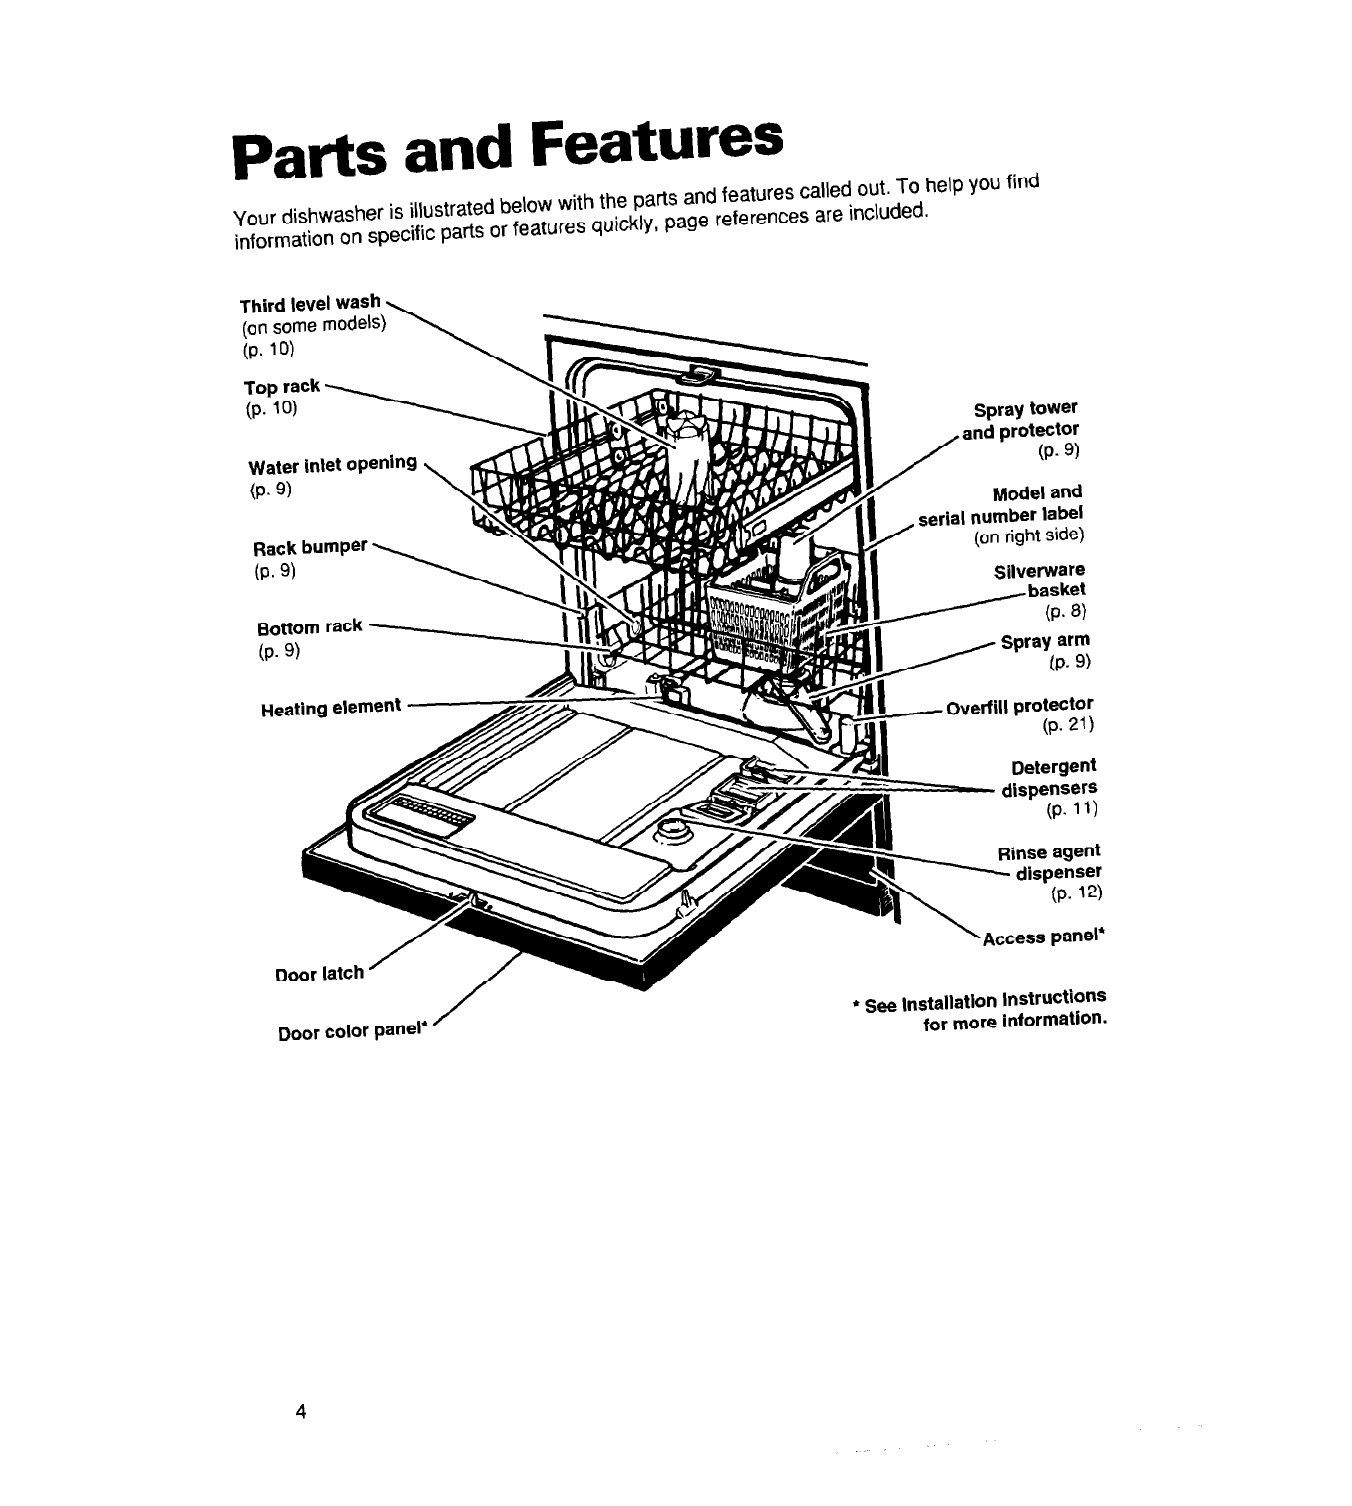 Page 4 of Whirlpool Dishwasher 830 User Guide